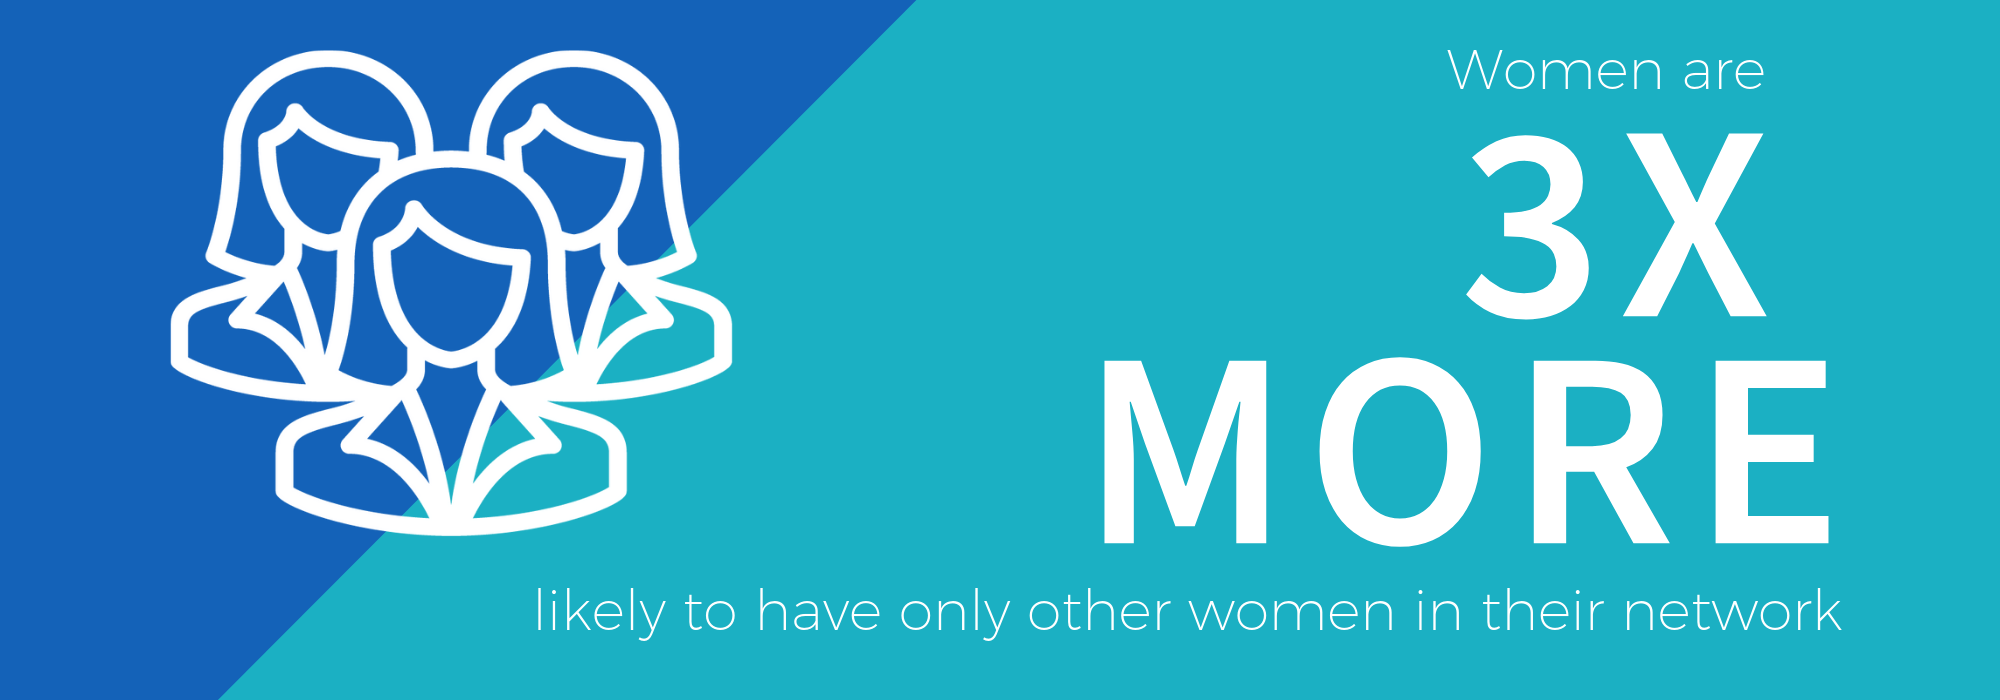 image of women are 3x more likely to have only other women in their network